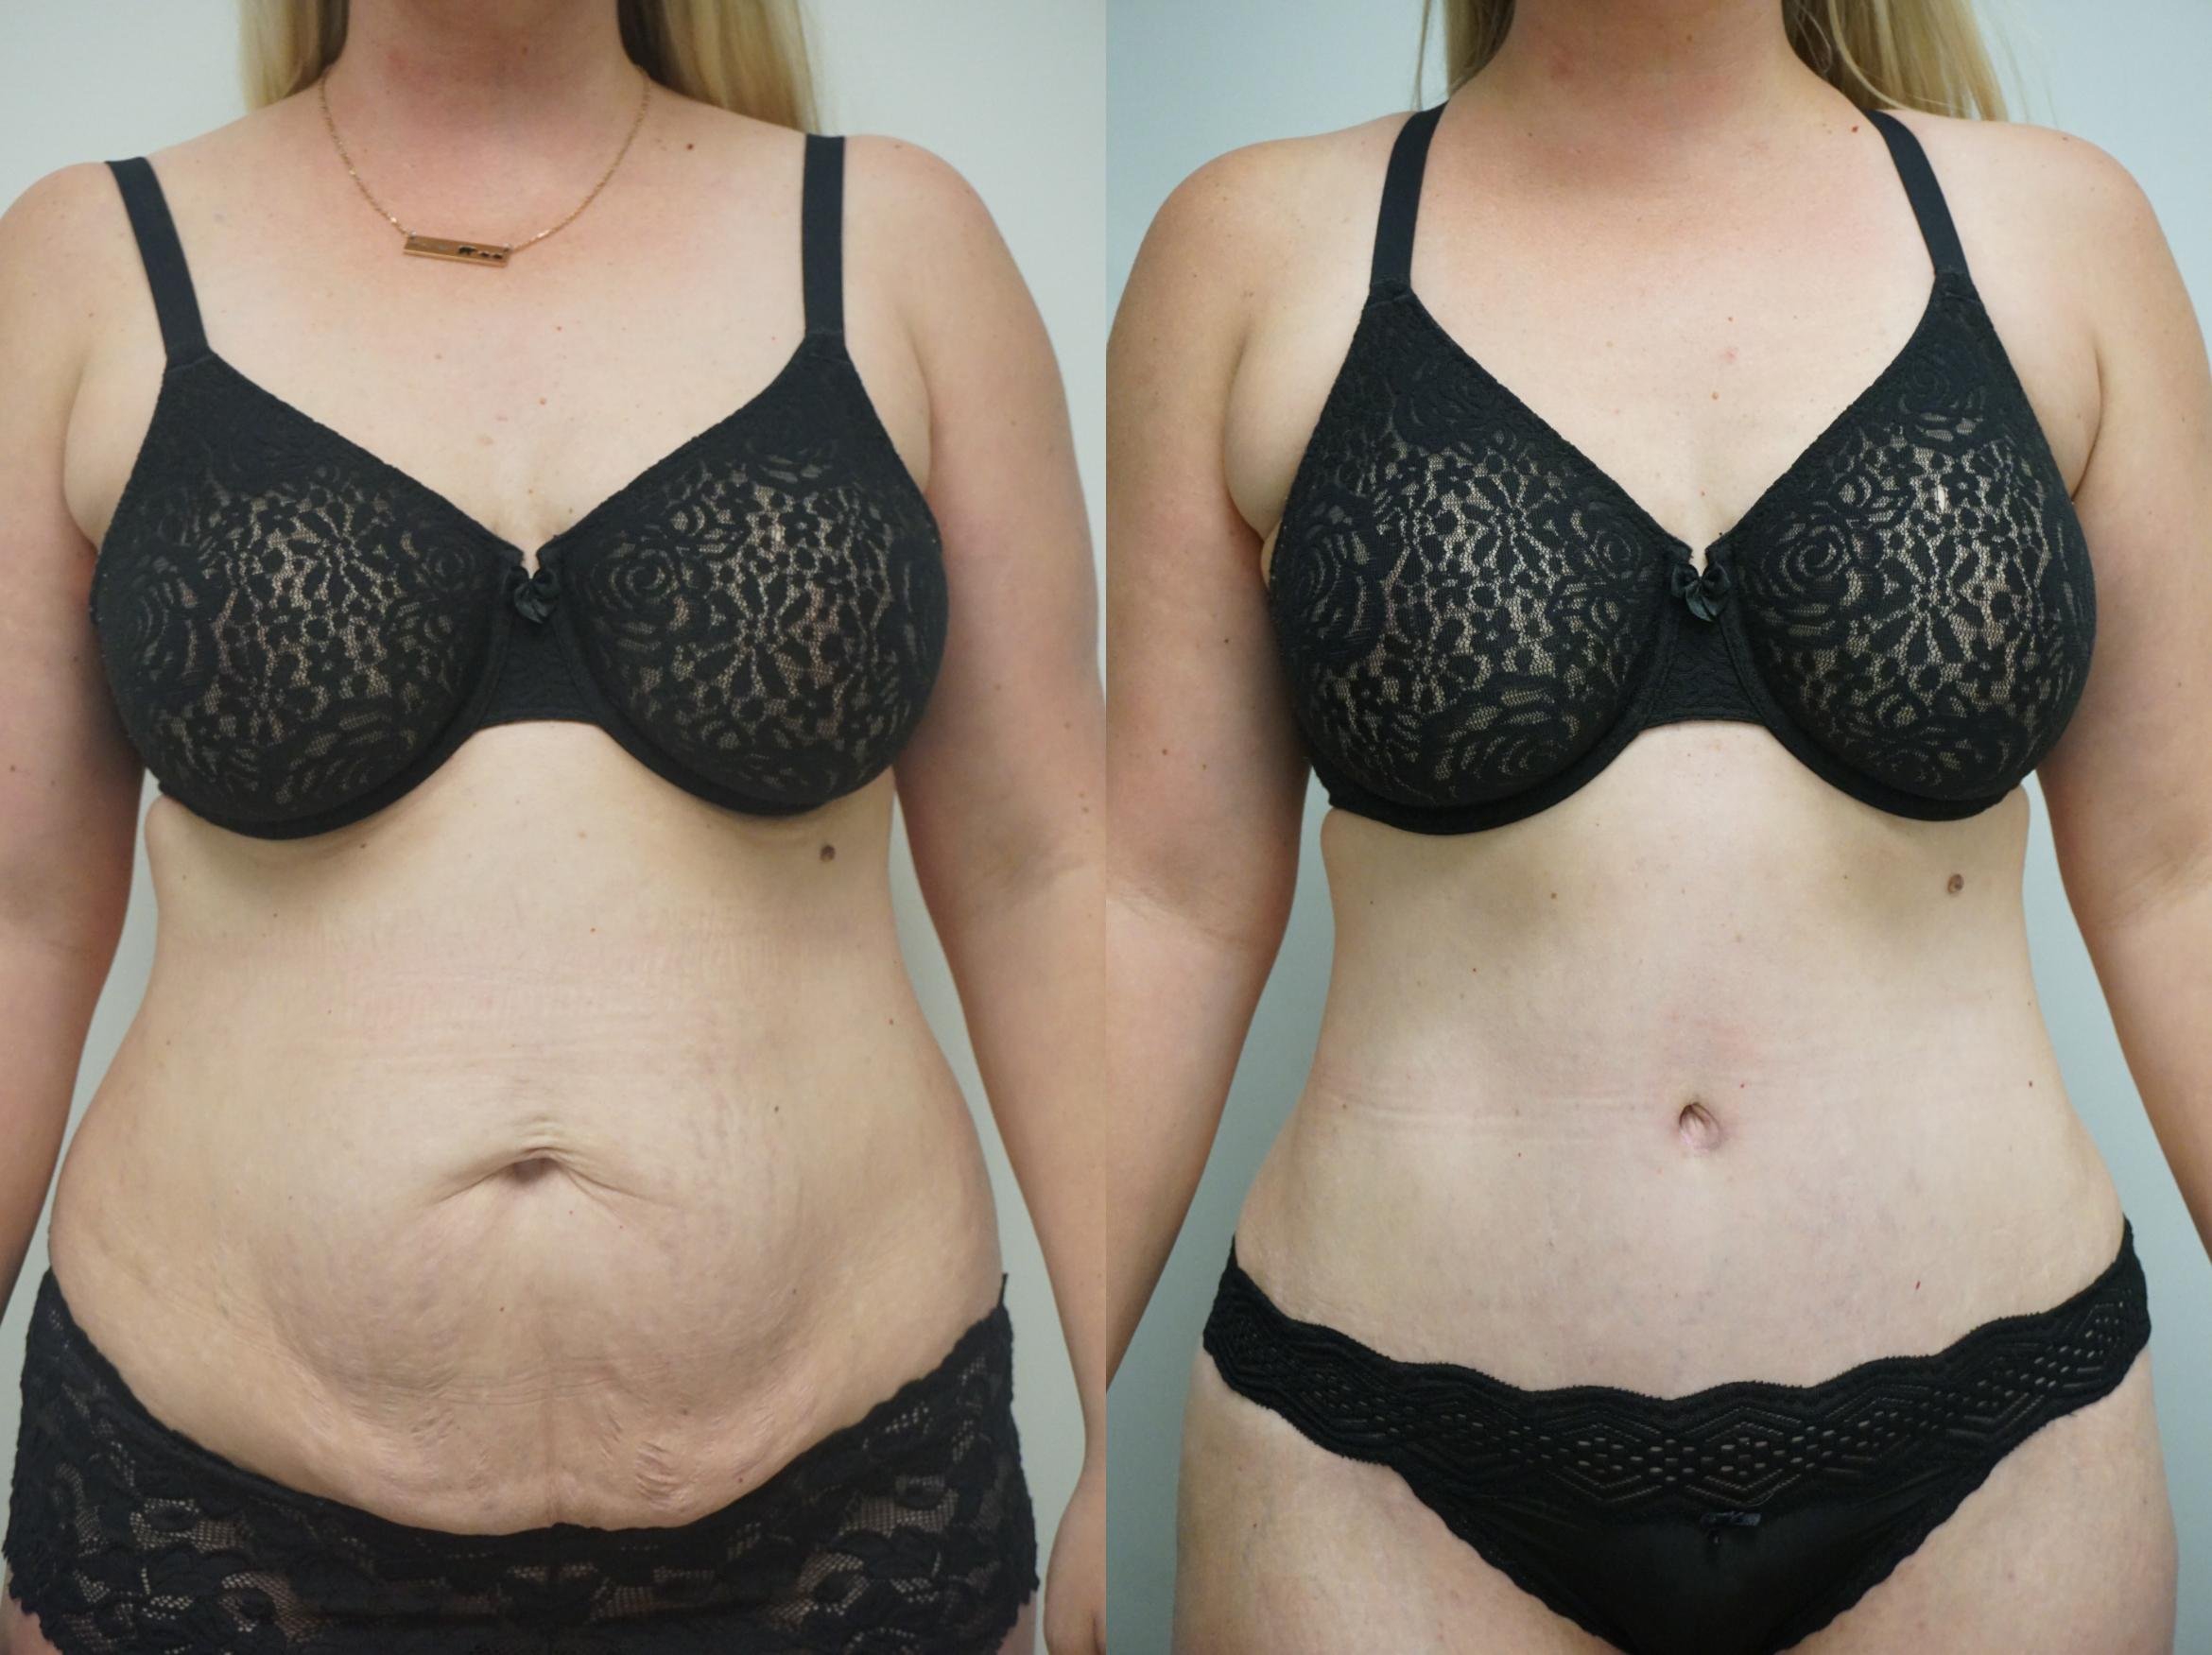 Tummy Tuck (Abdominoplasty) Case 256 Before & After View #1 | Gilbert, AZ | Dr. Josh Olson: Advanced Plastic Surgery Institute